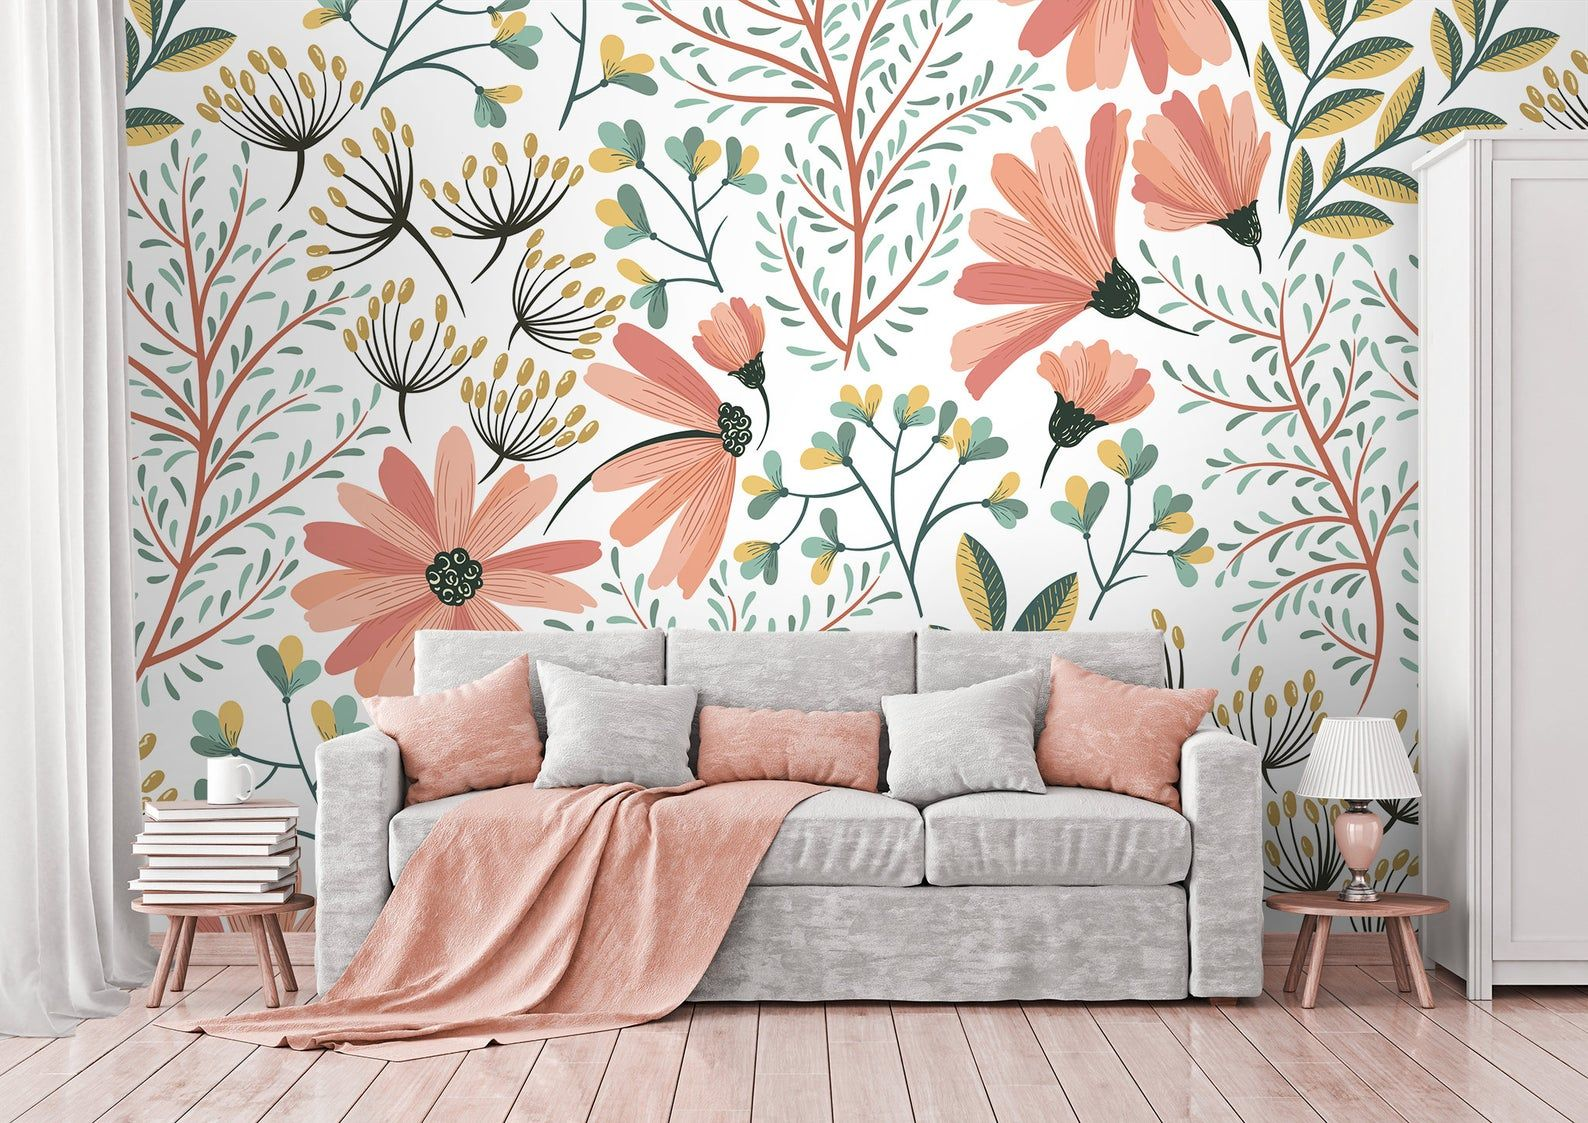 Removable Wallpaper Colorful Floral Wallpaper Self